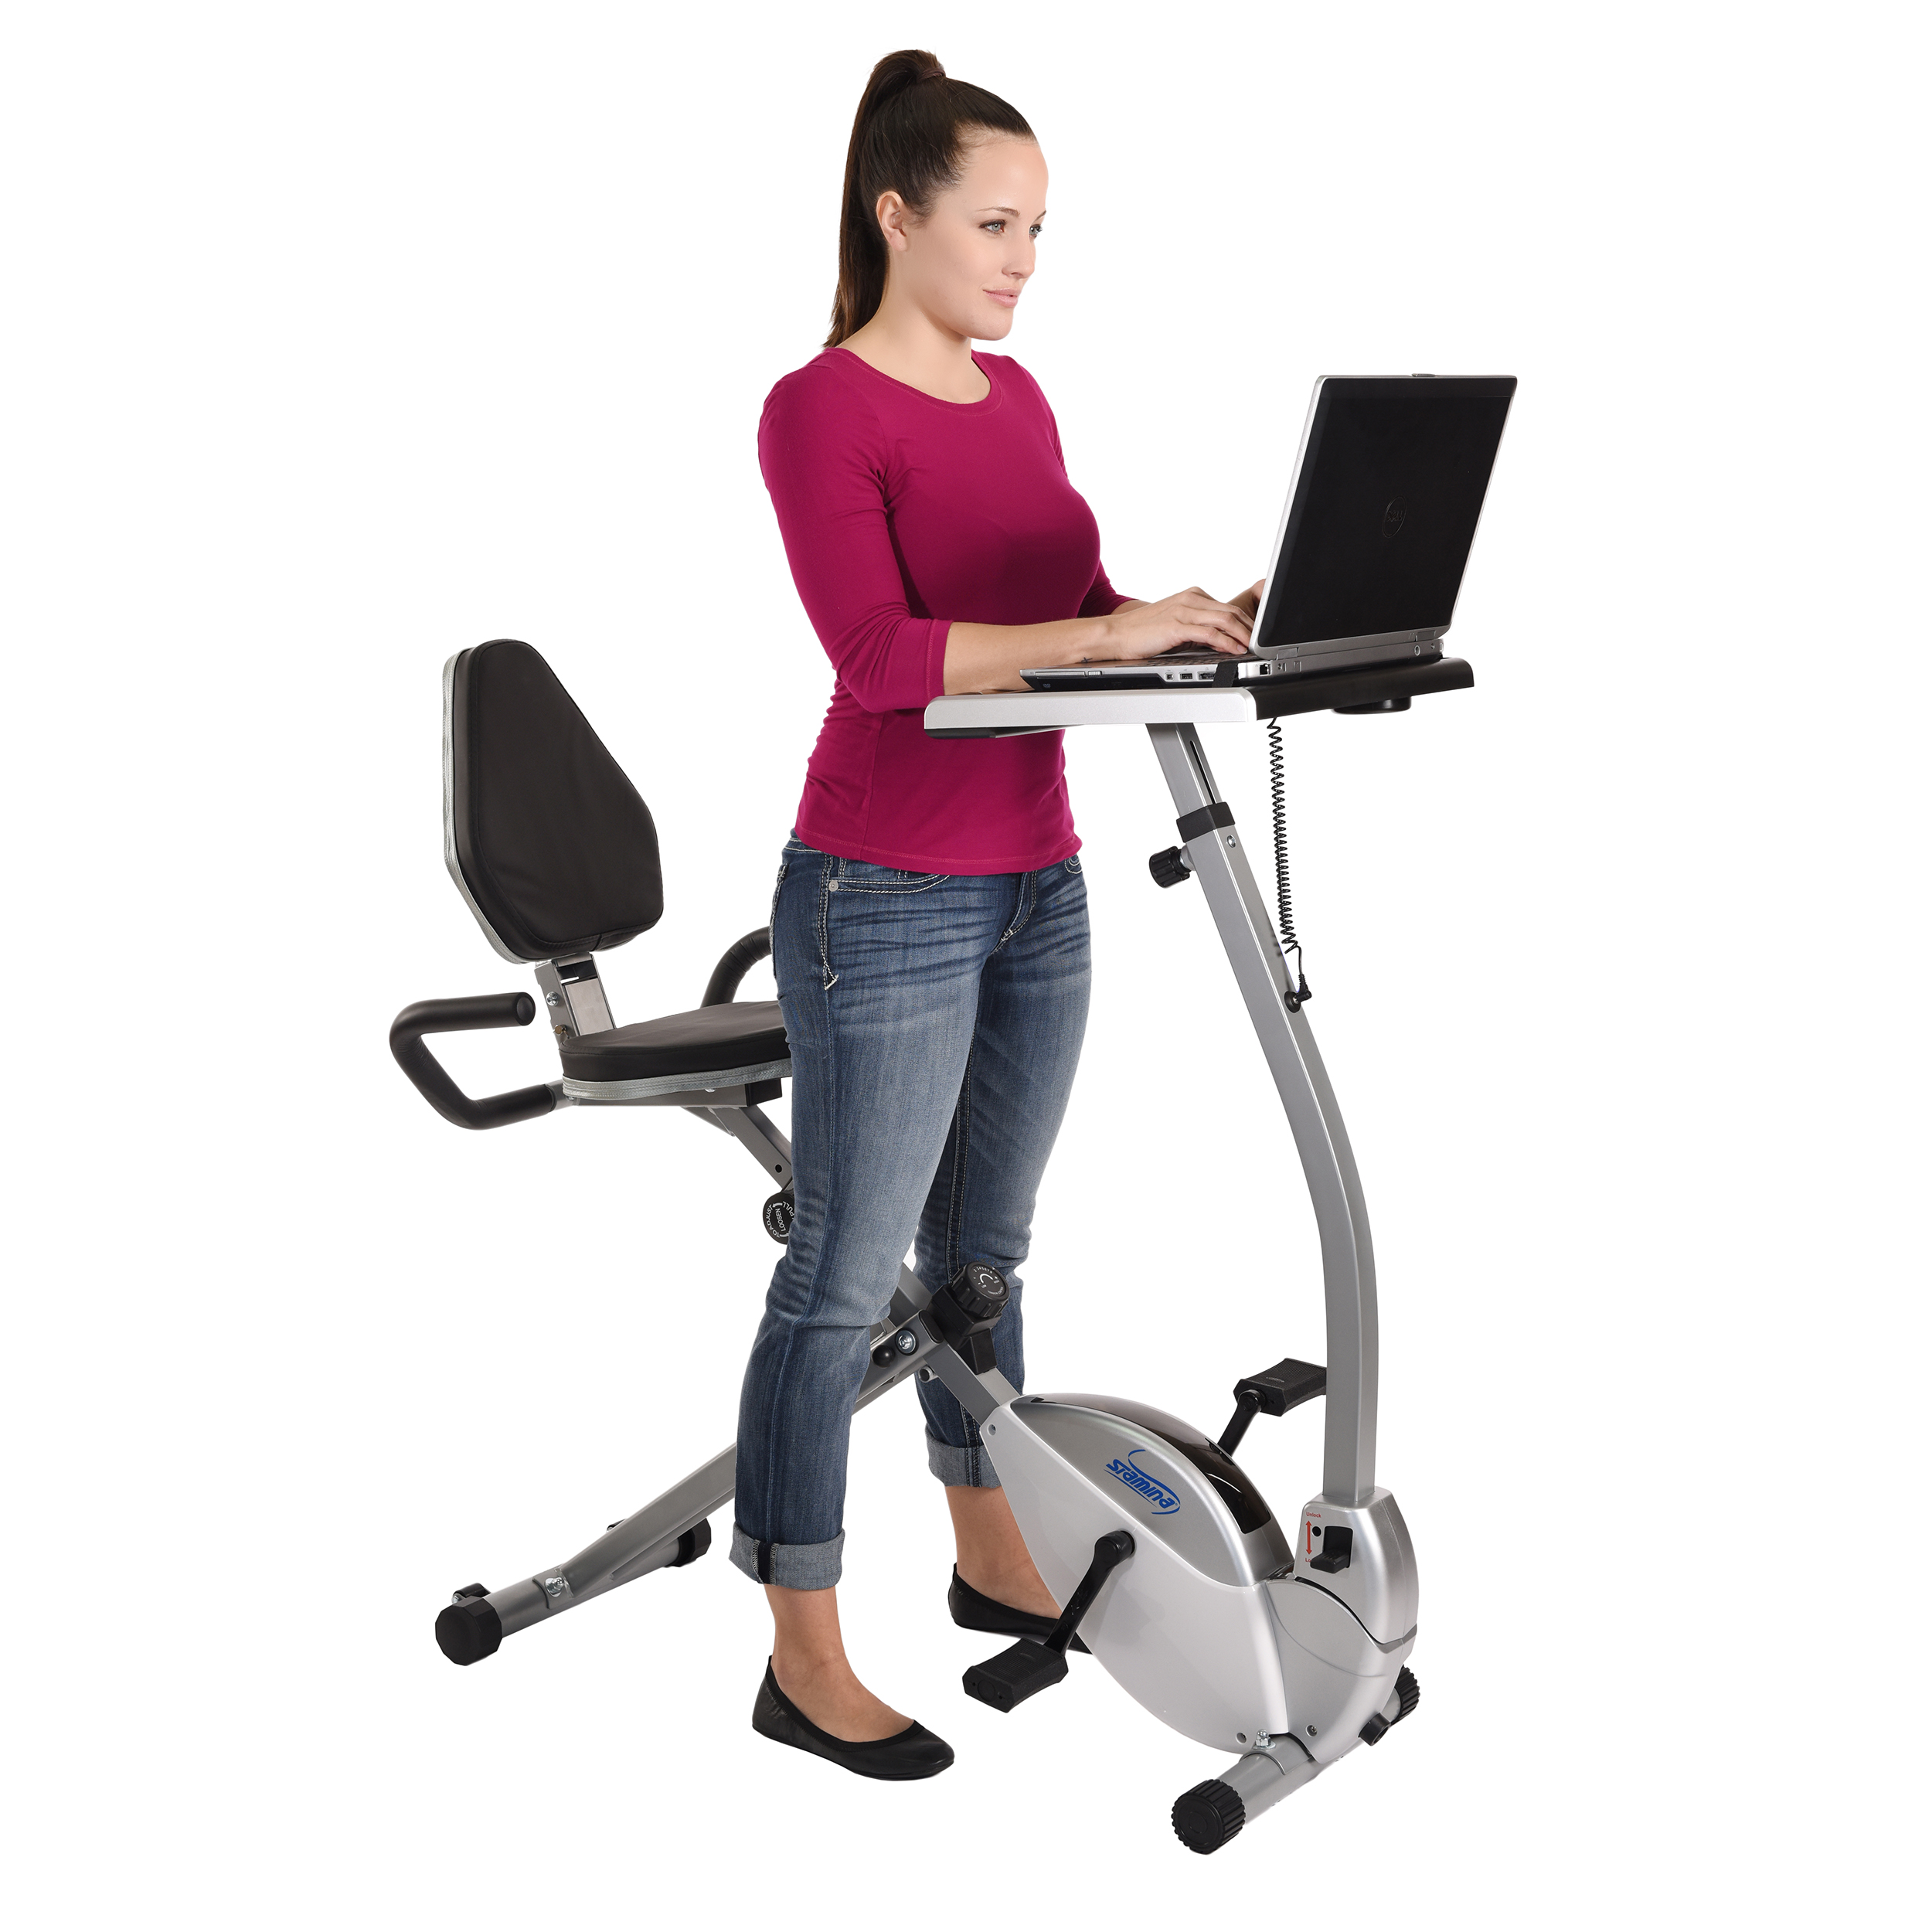 office chair rowing walgreens transport lightweight stamina 2 in 1 recumbent exercise bike products